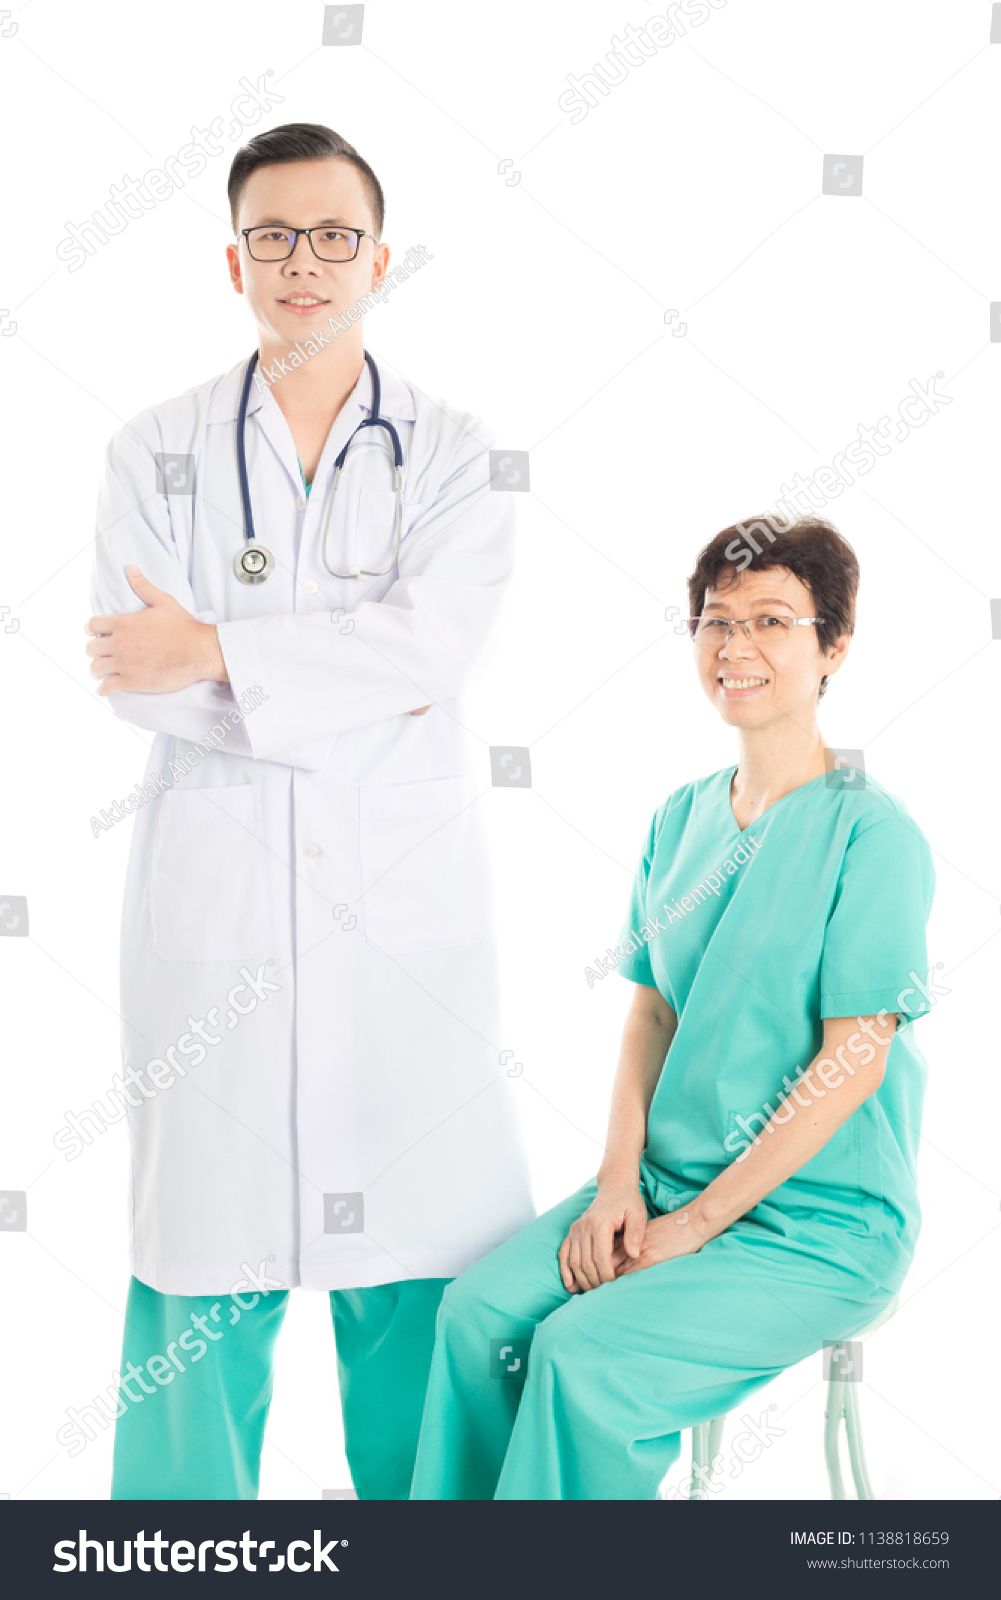 two smart Asian doctor stand on white background, cross one's arm